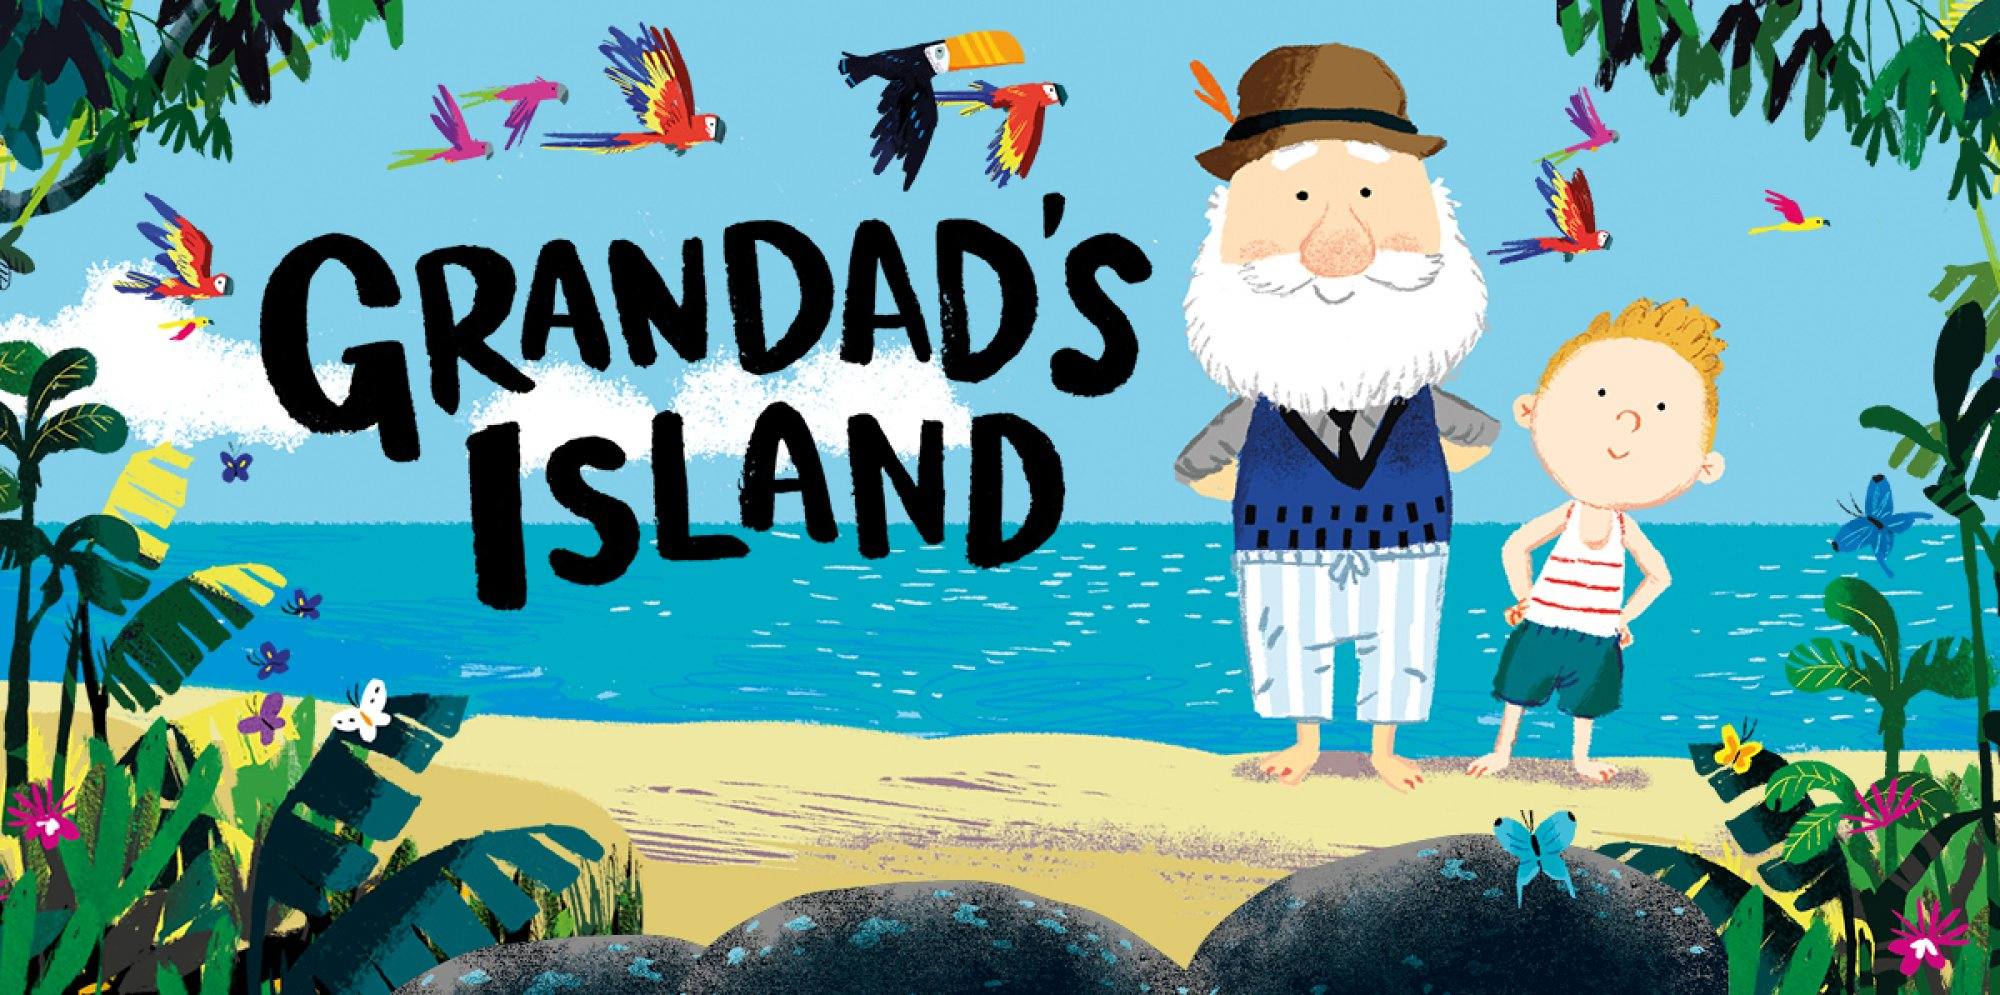 Benji Davies Grandad's Island: Grandad and Syd standing on a sandy beach, exotic birds and the blue sea in the background, rocks and flowers with exotic butterflies in the foreground